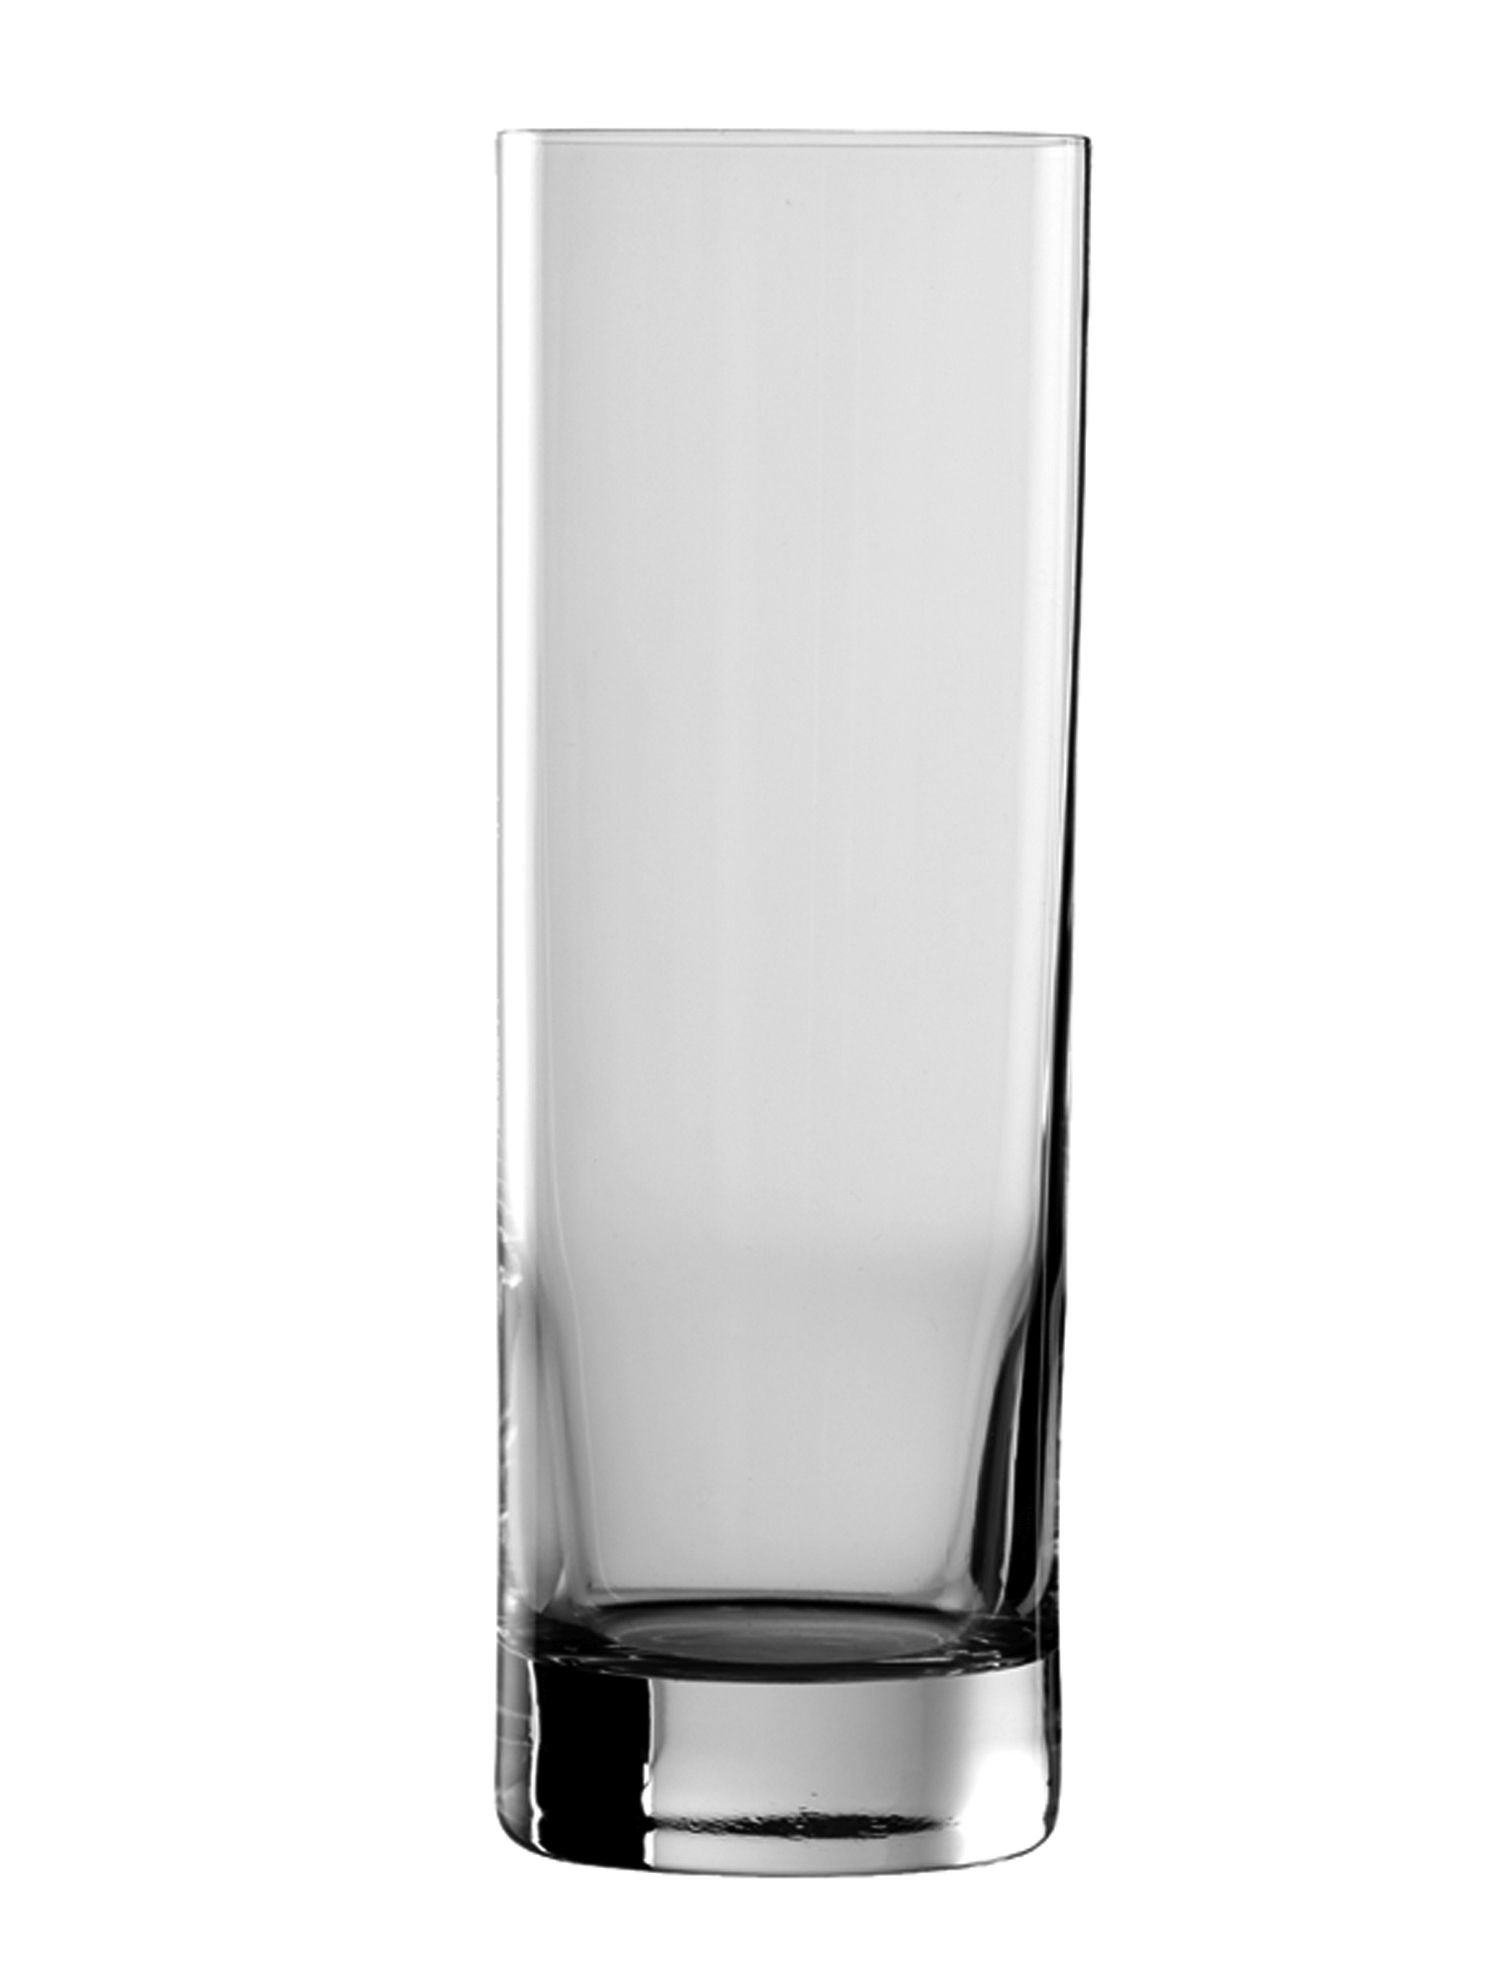 Stolzle New York Bar Collins Glasses, Set of 6